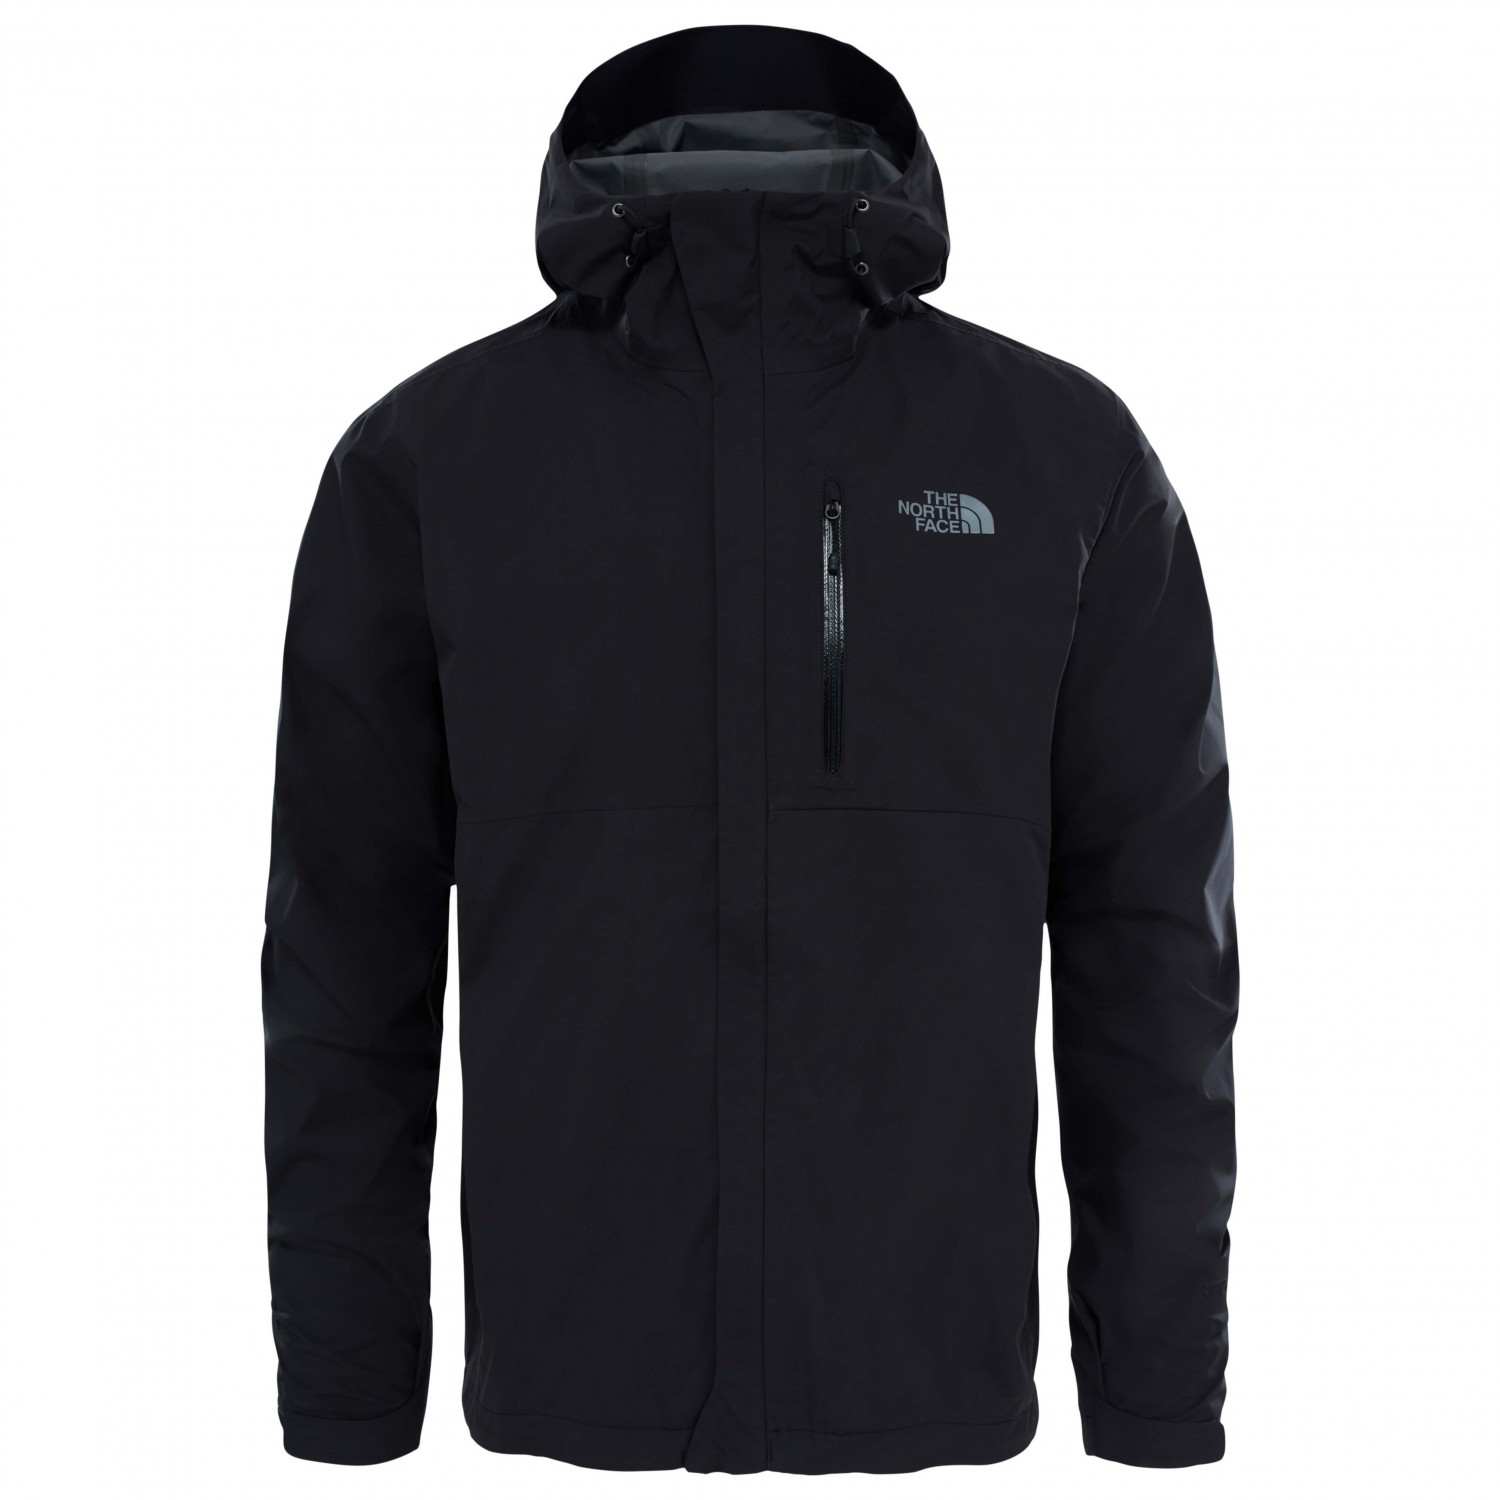 03b255e9e1 The North Face Dryzzle Jacket - Hardshelljacke Herren ...